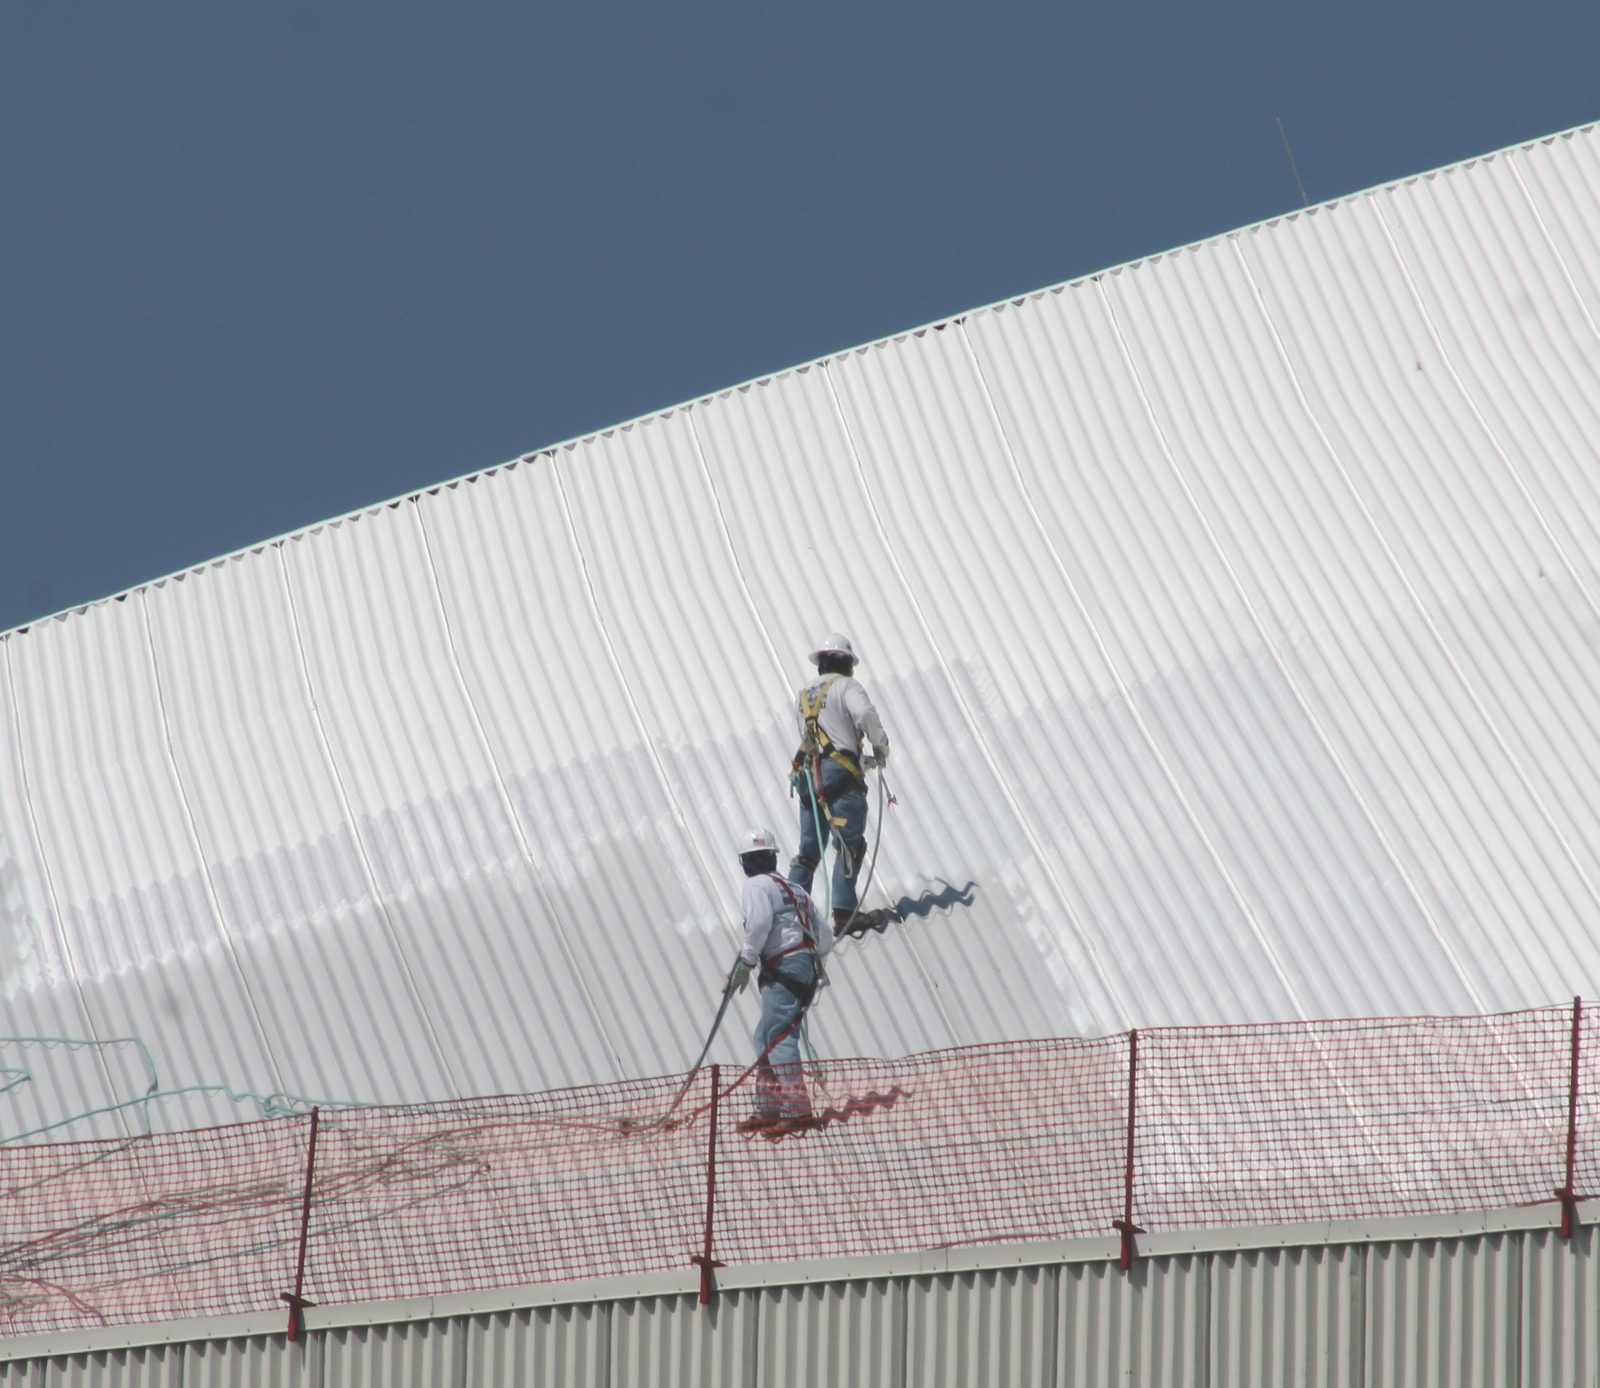 Roof Coating Sprayers – Spray Systems for Roof Sealants